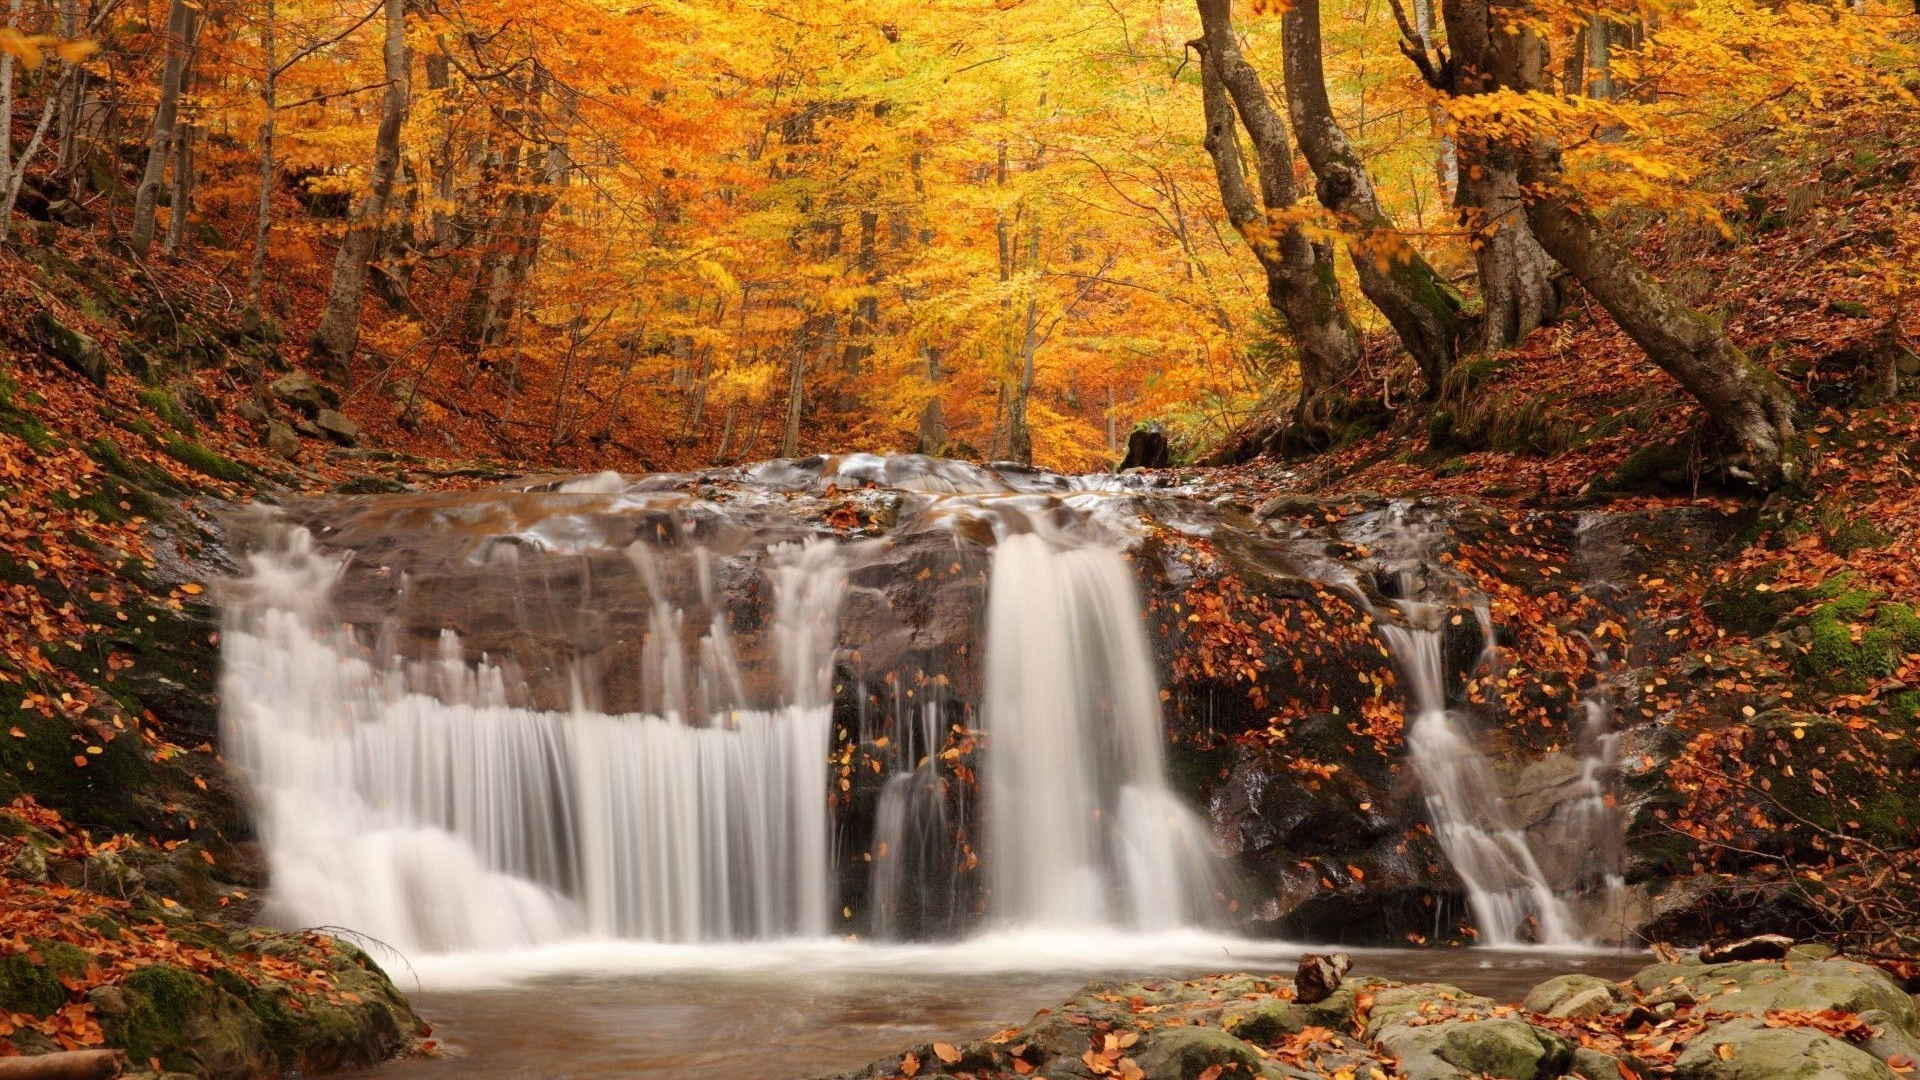 Fall Autumn Hd Wallpaper 1920x1080 Landscapes Nature Waterfall Rivers Trees Forest Autumn